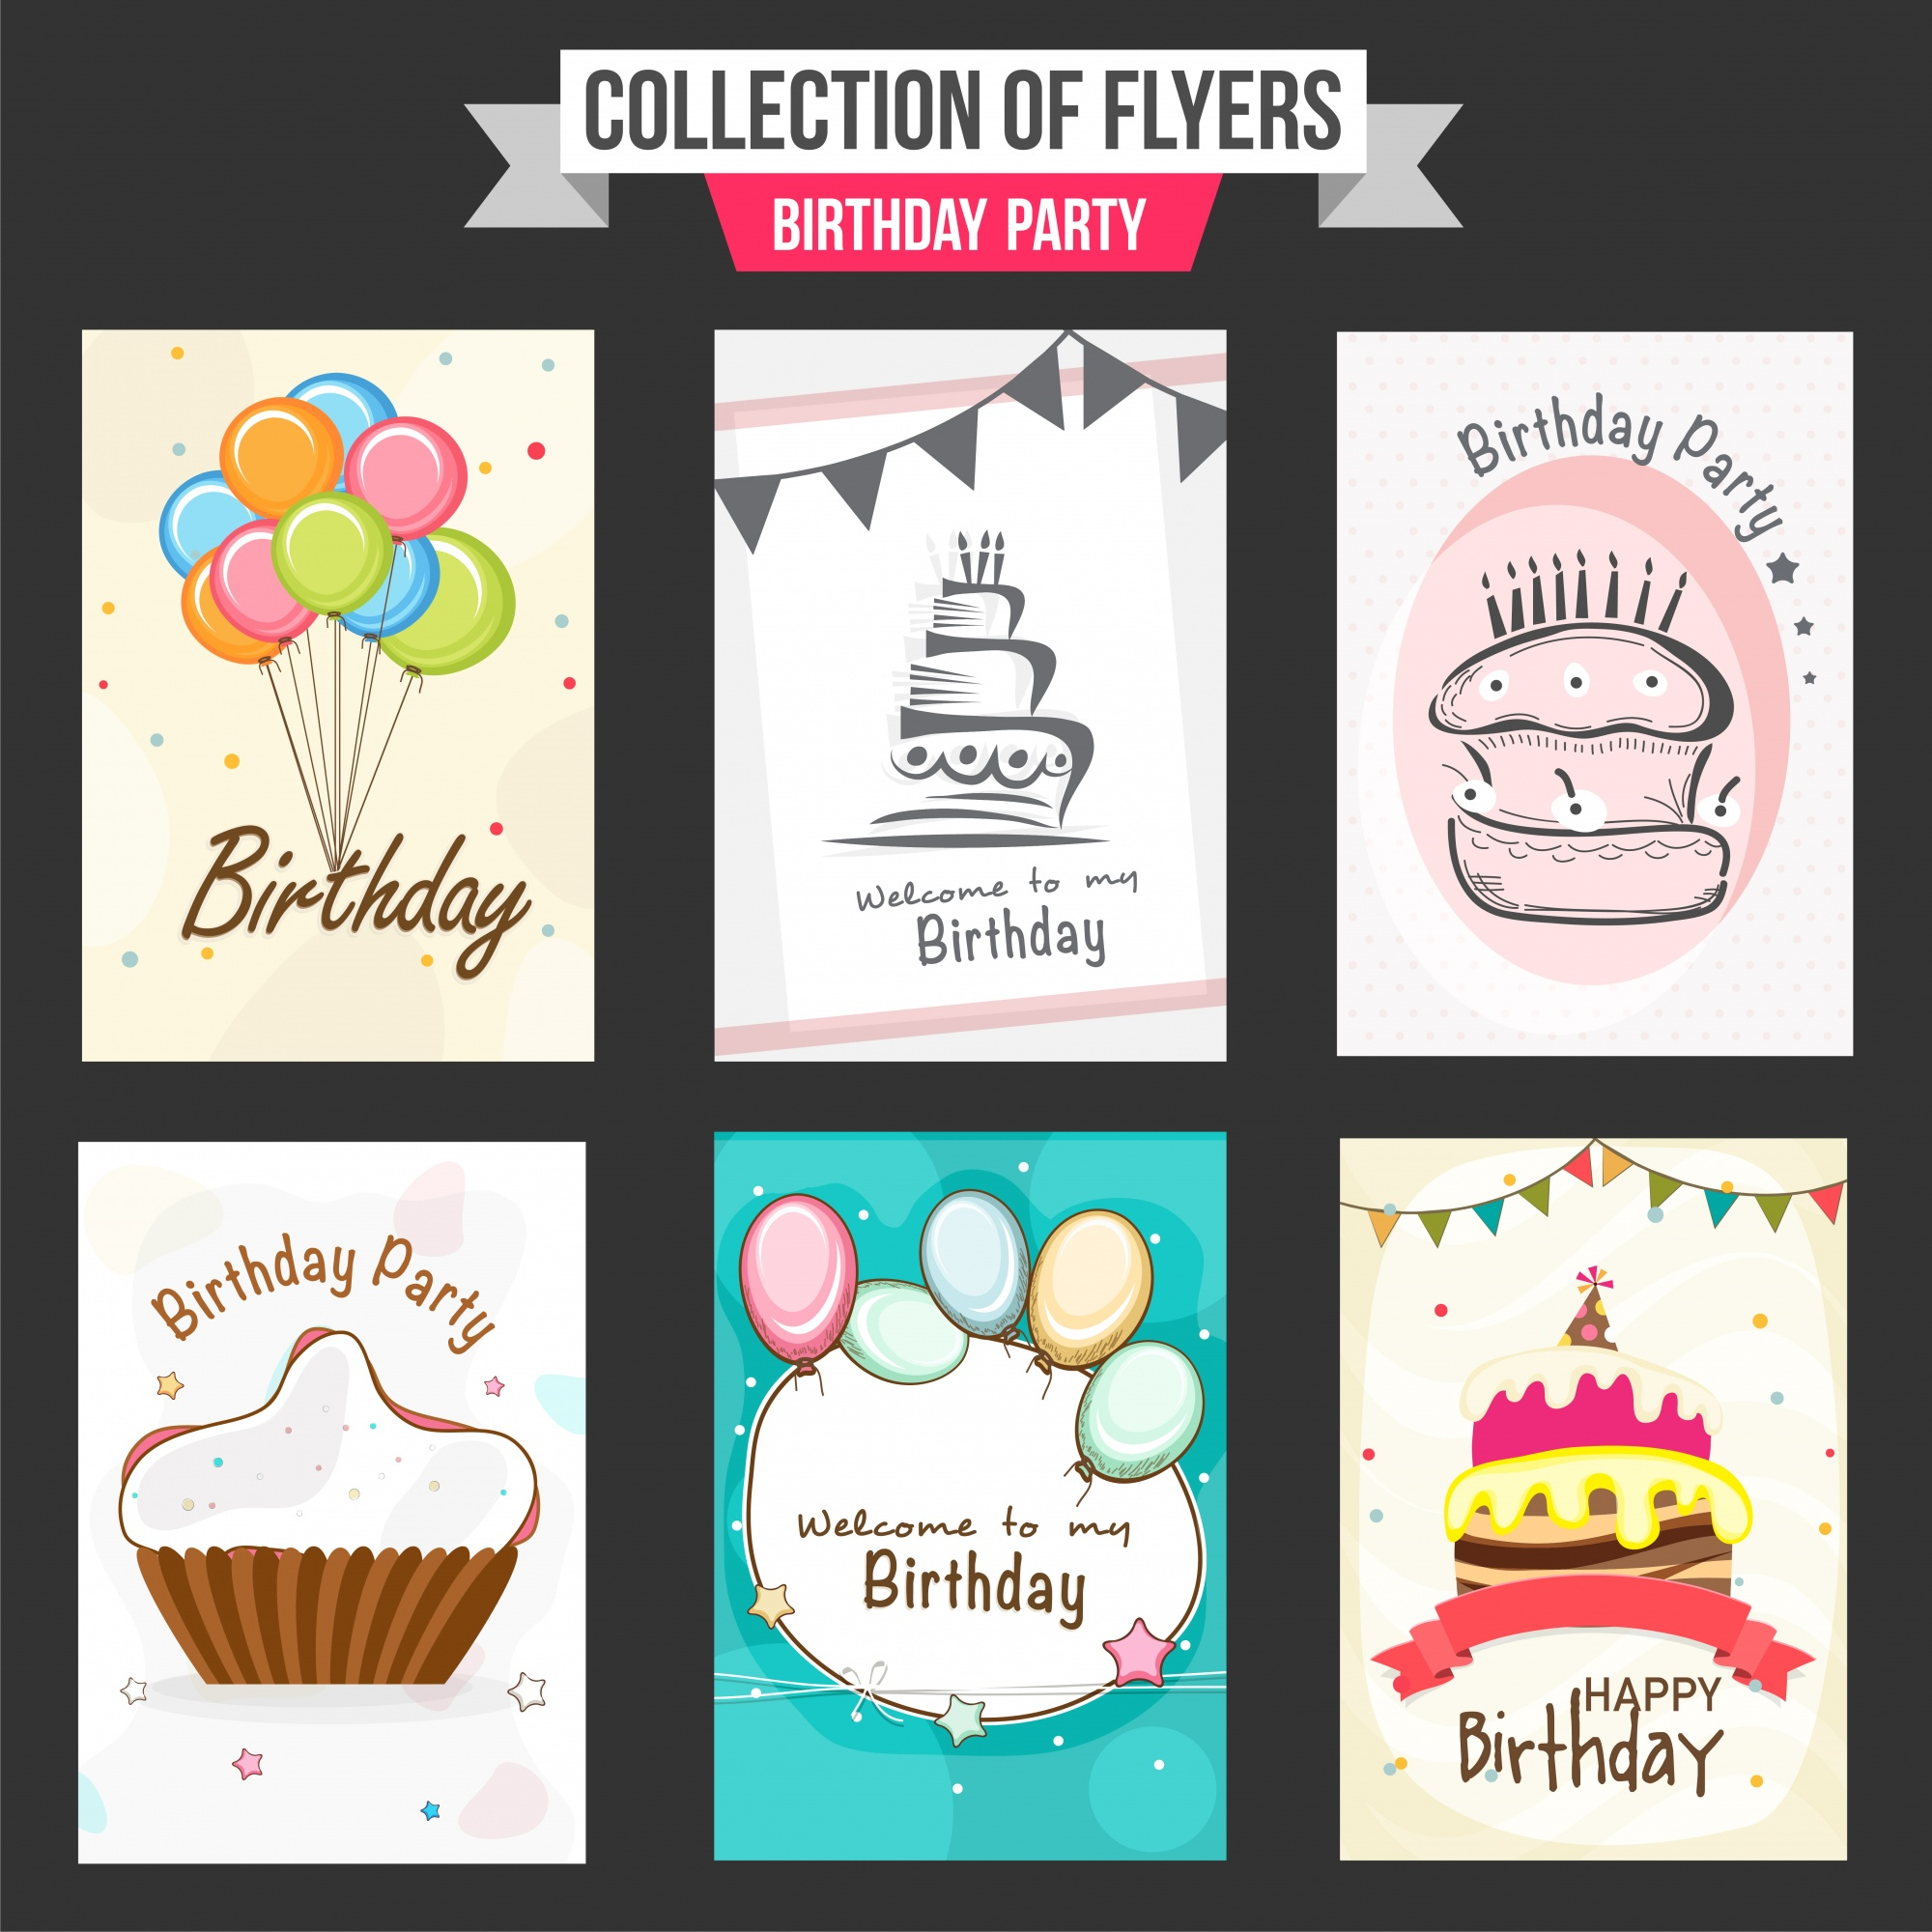 Collection of Birthday Party flyers with illustration of colorful balloons, sweet cakes and cupcake